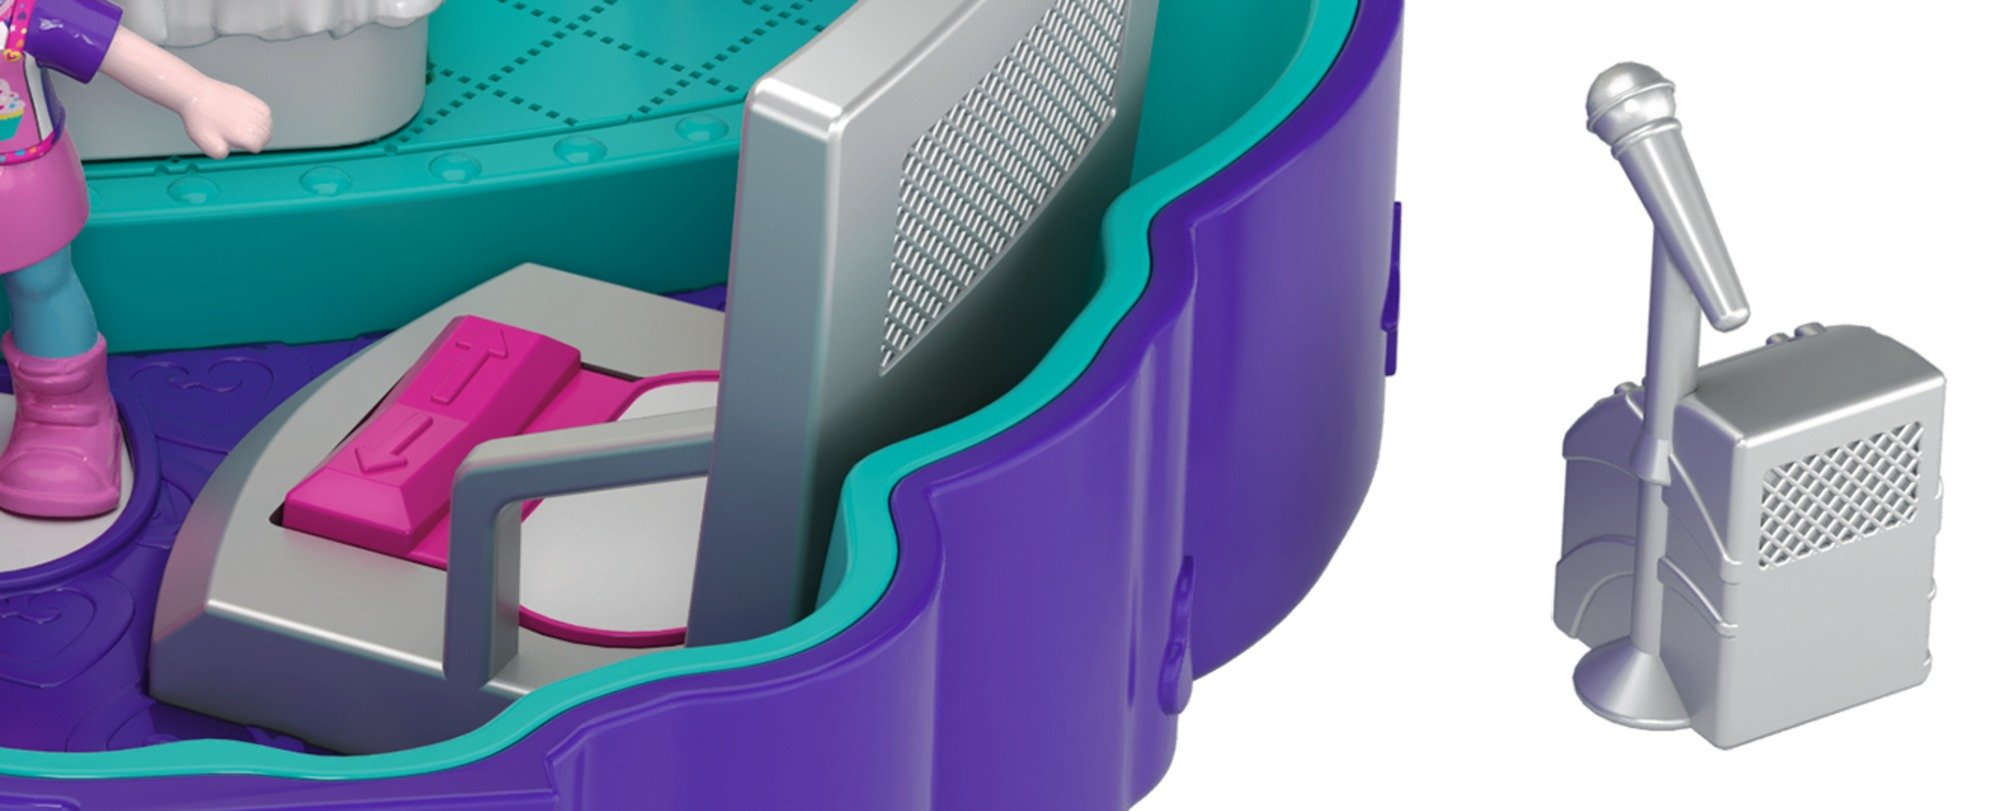 Polly Pocket Sweet Treat Compact Multicolor by Polly Pocket (Image #6)